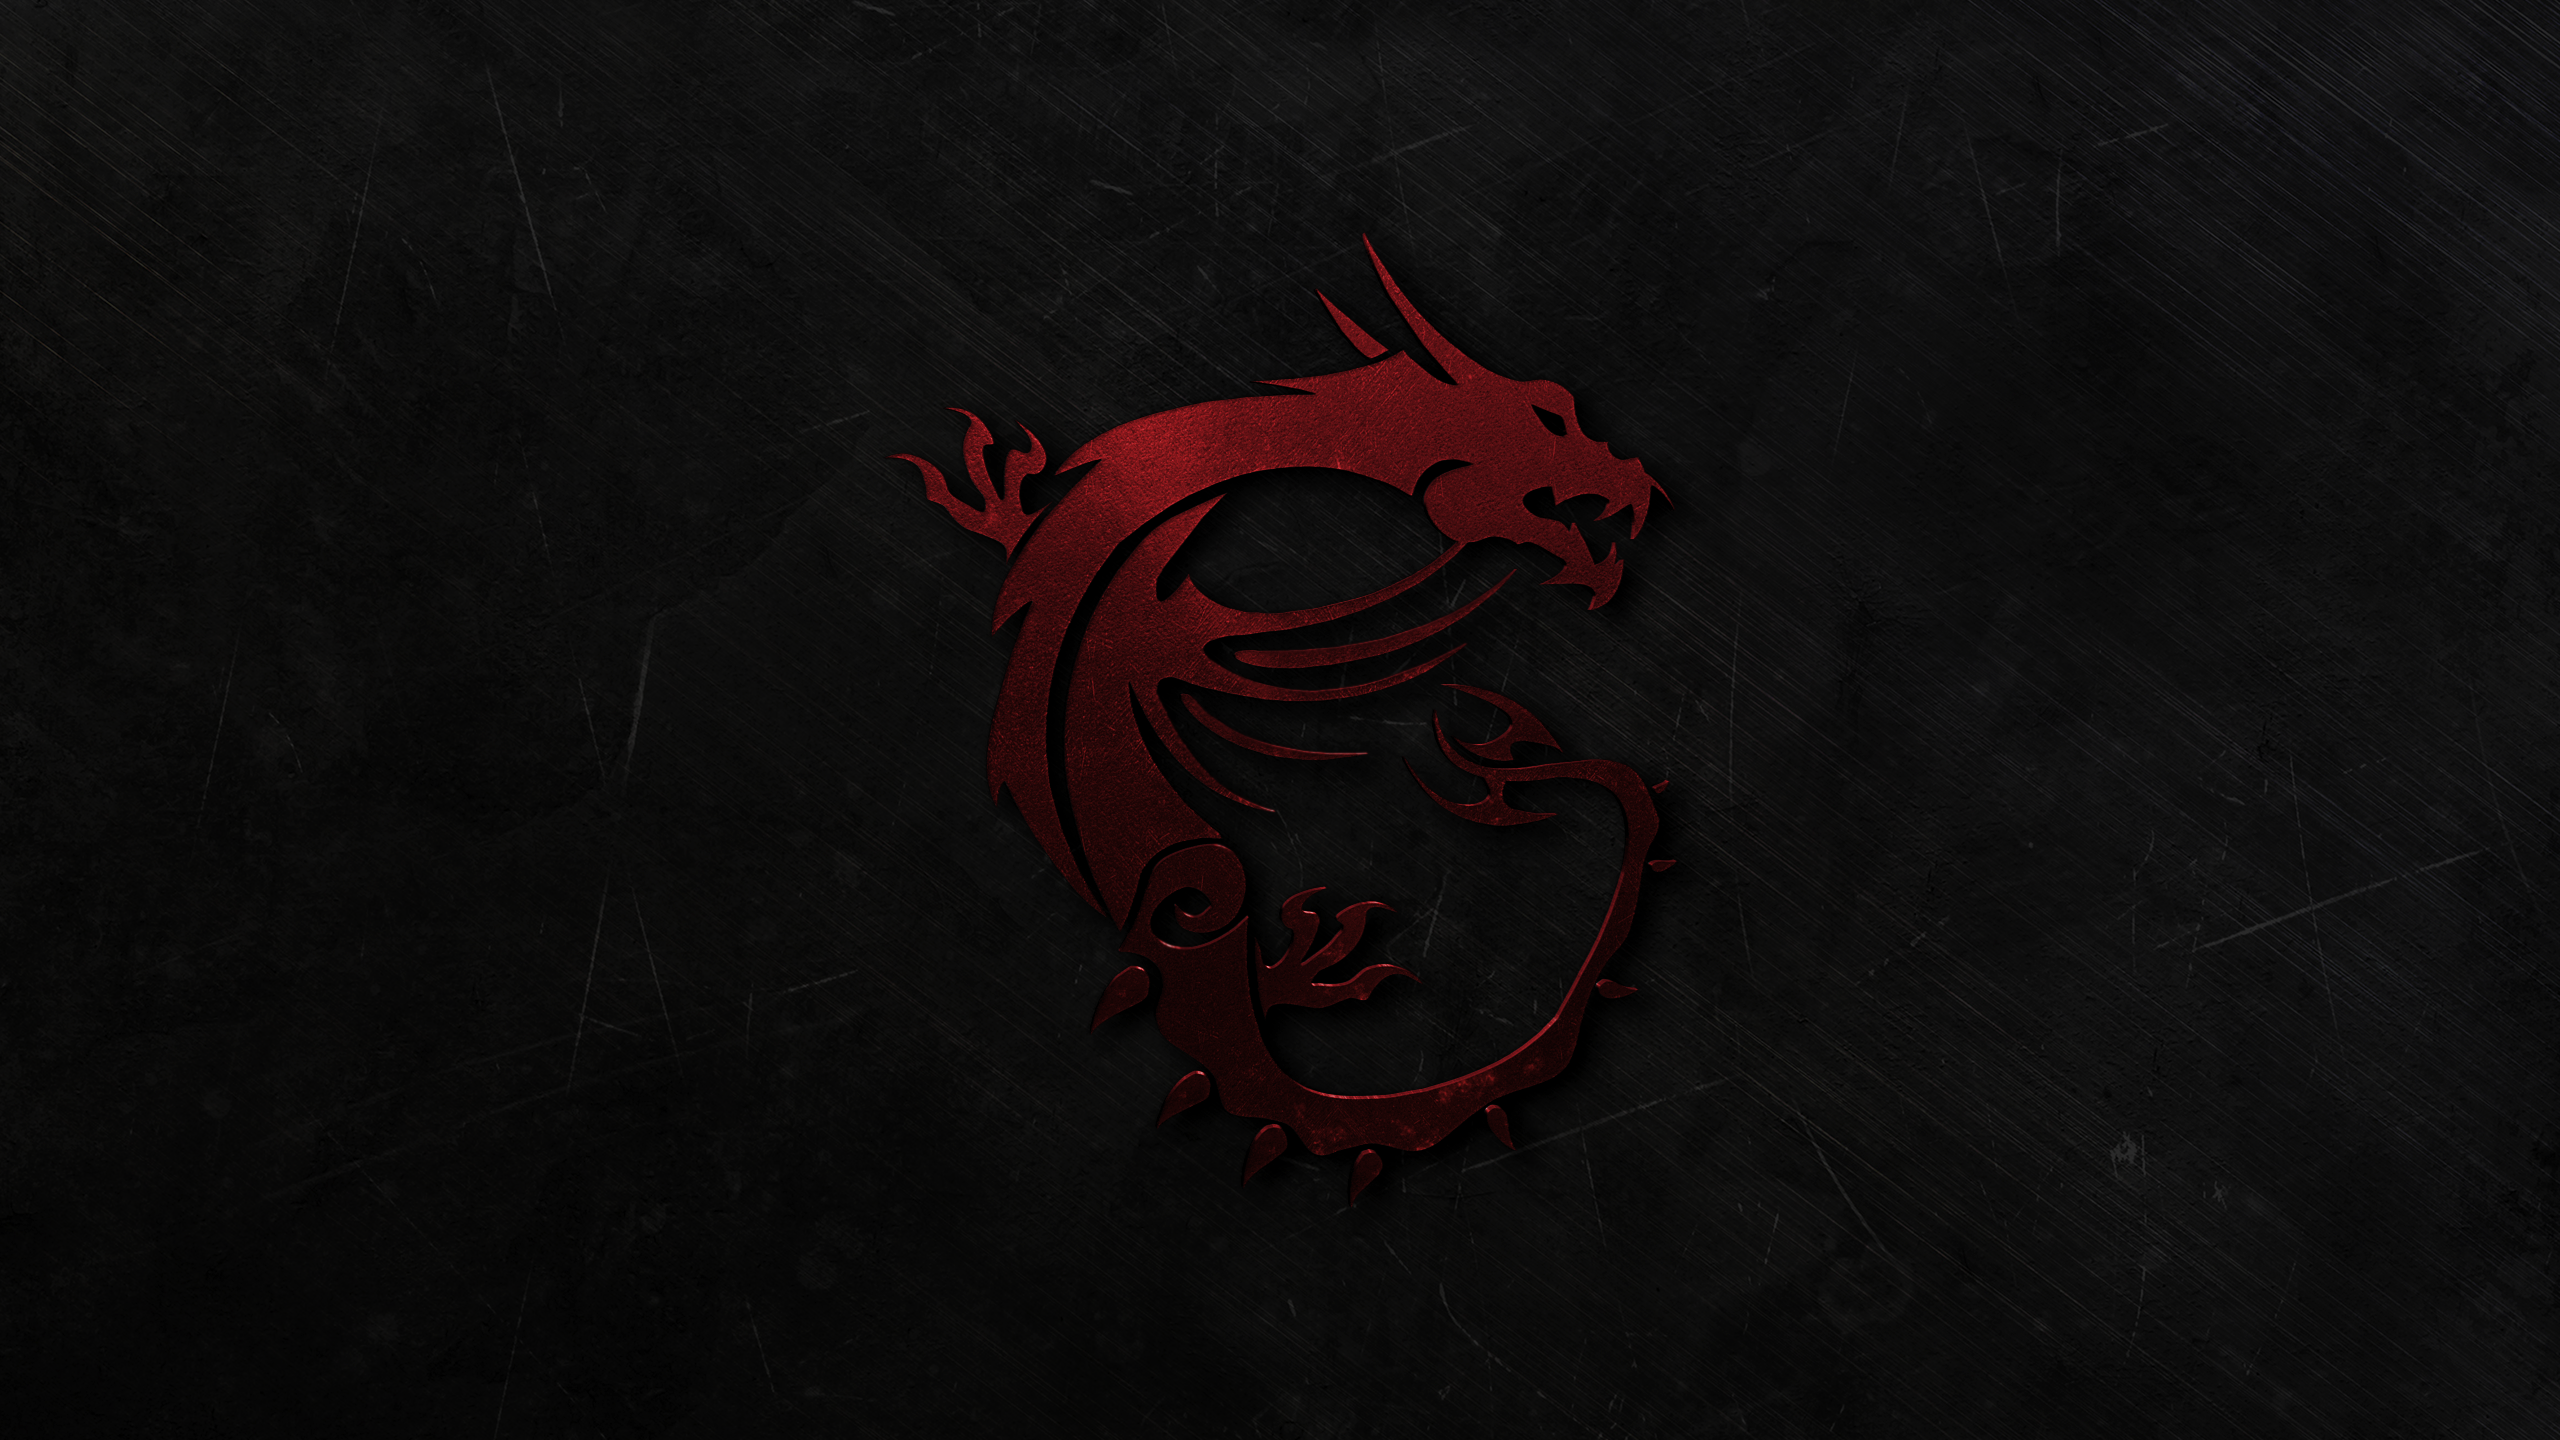 msi gaming dragon wallpaper v2 red 2560x1440 by xilent21 on deviantart. Black Bedroom Furniture Sets. Home Design Ideas